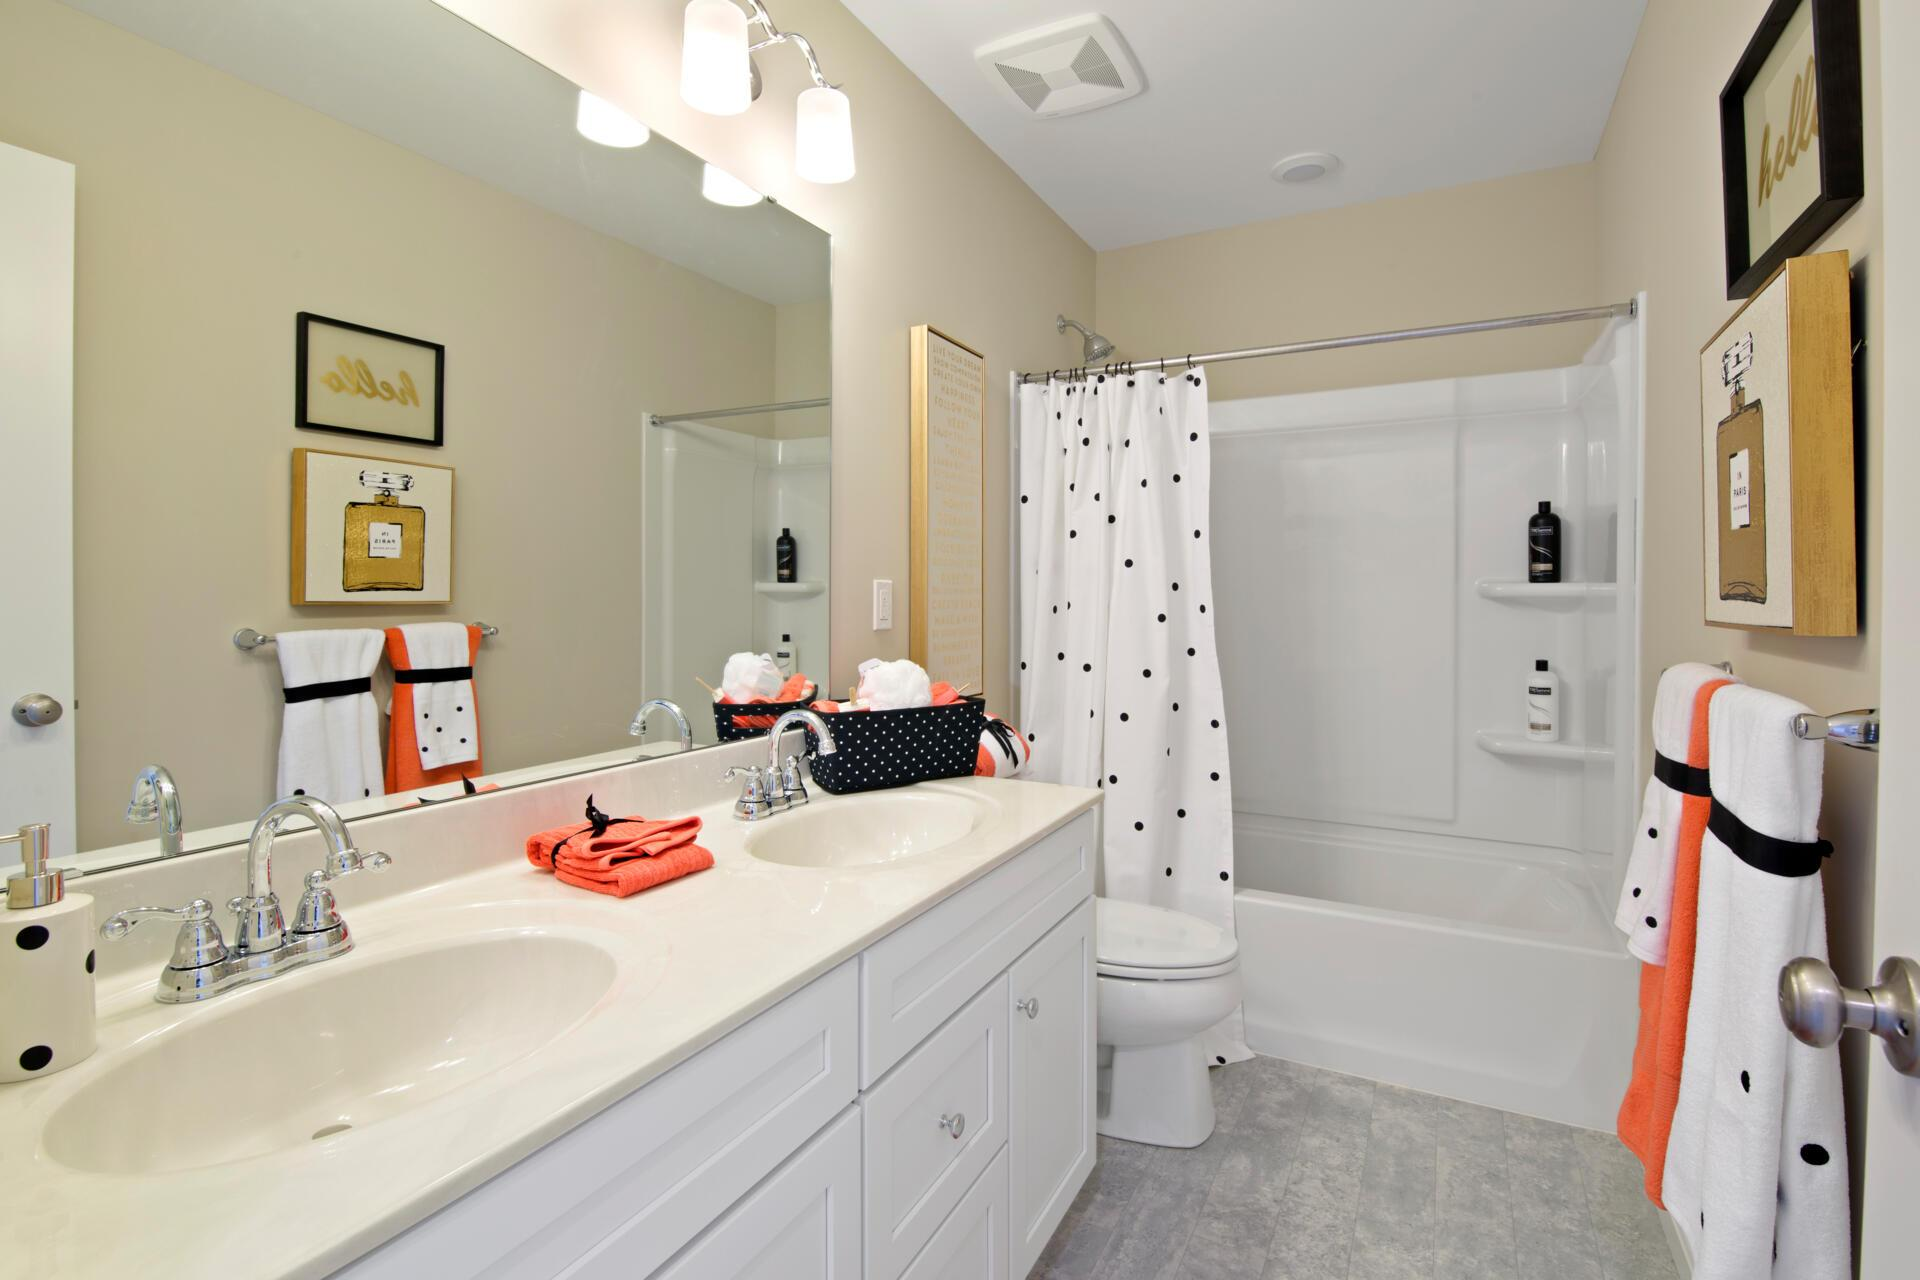 Bathroom featured in the Quentin By Drees Homes in Cincinnati, KY